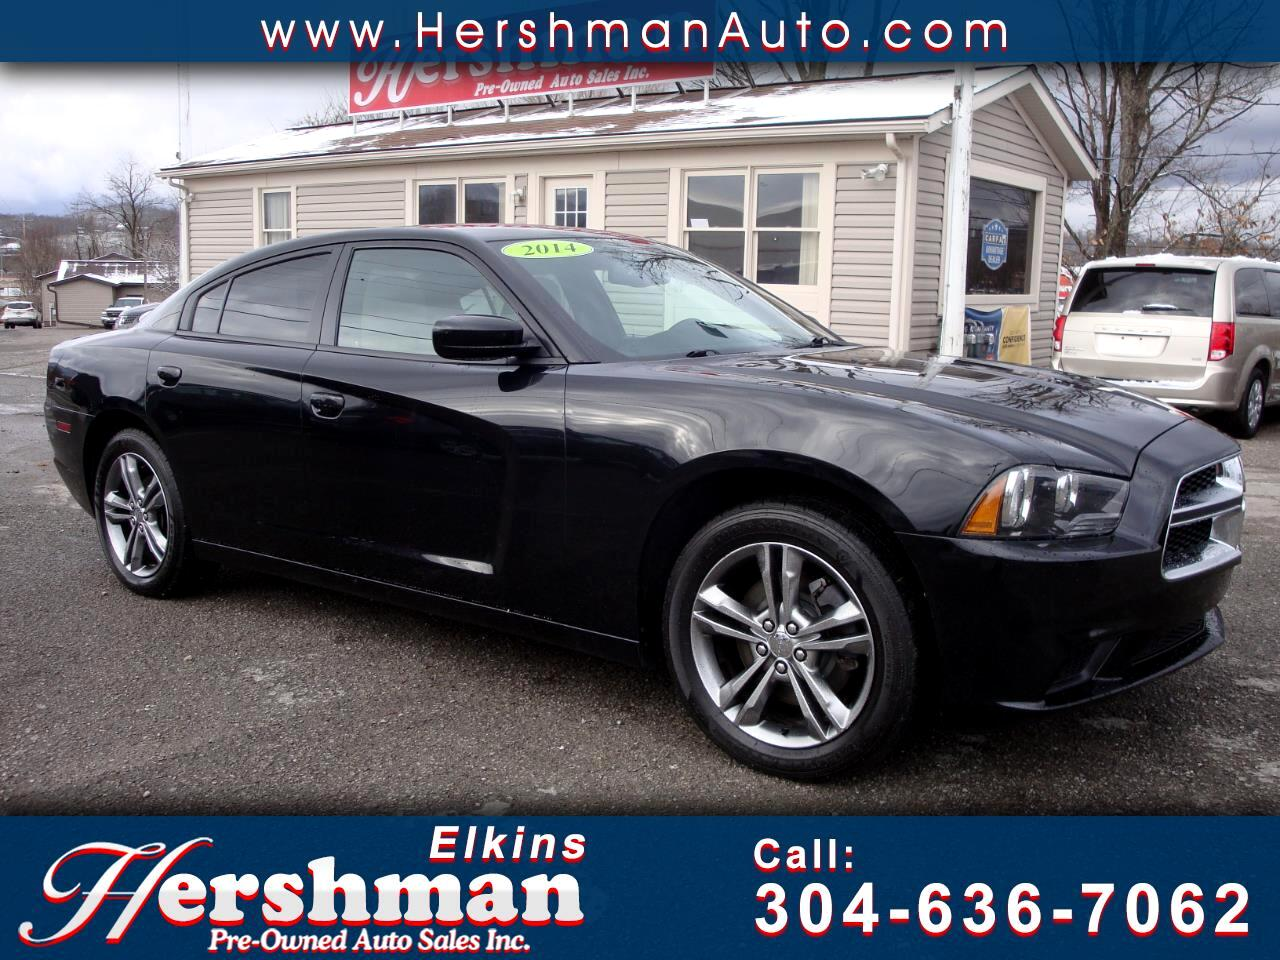 2014 Dodge Charger 4dr Sdn AWD